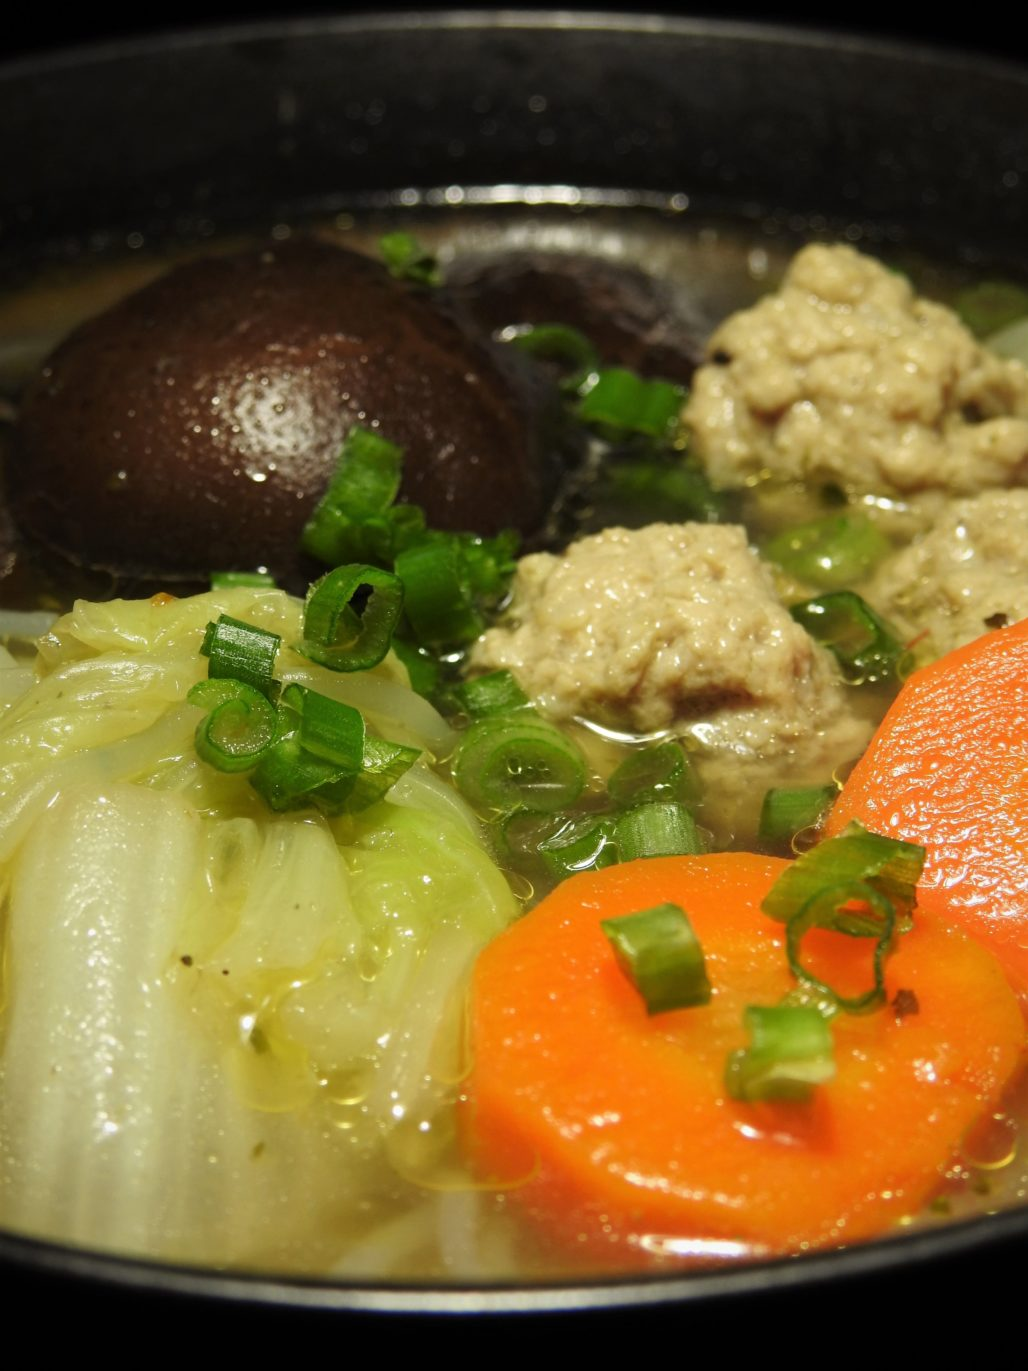 Tom Jued, Napa Cabbage Soup